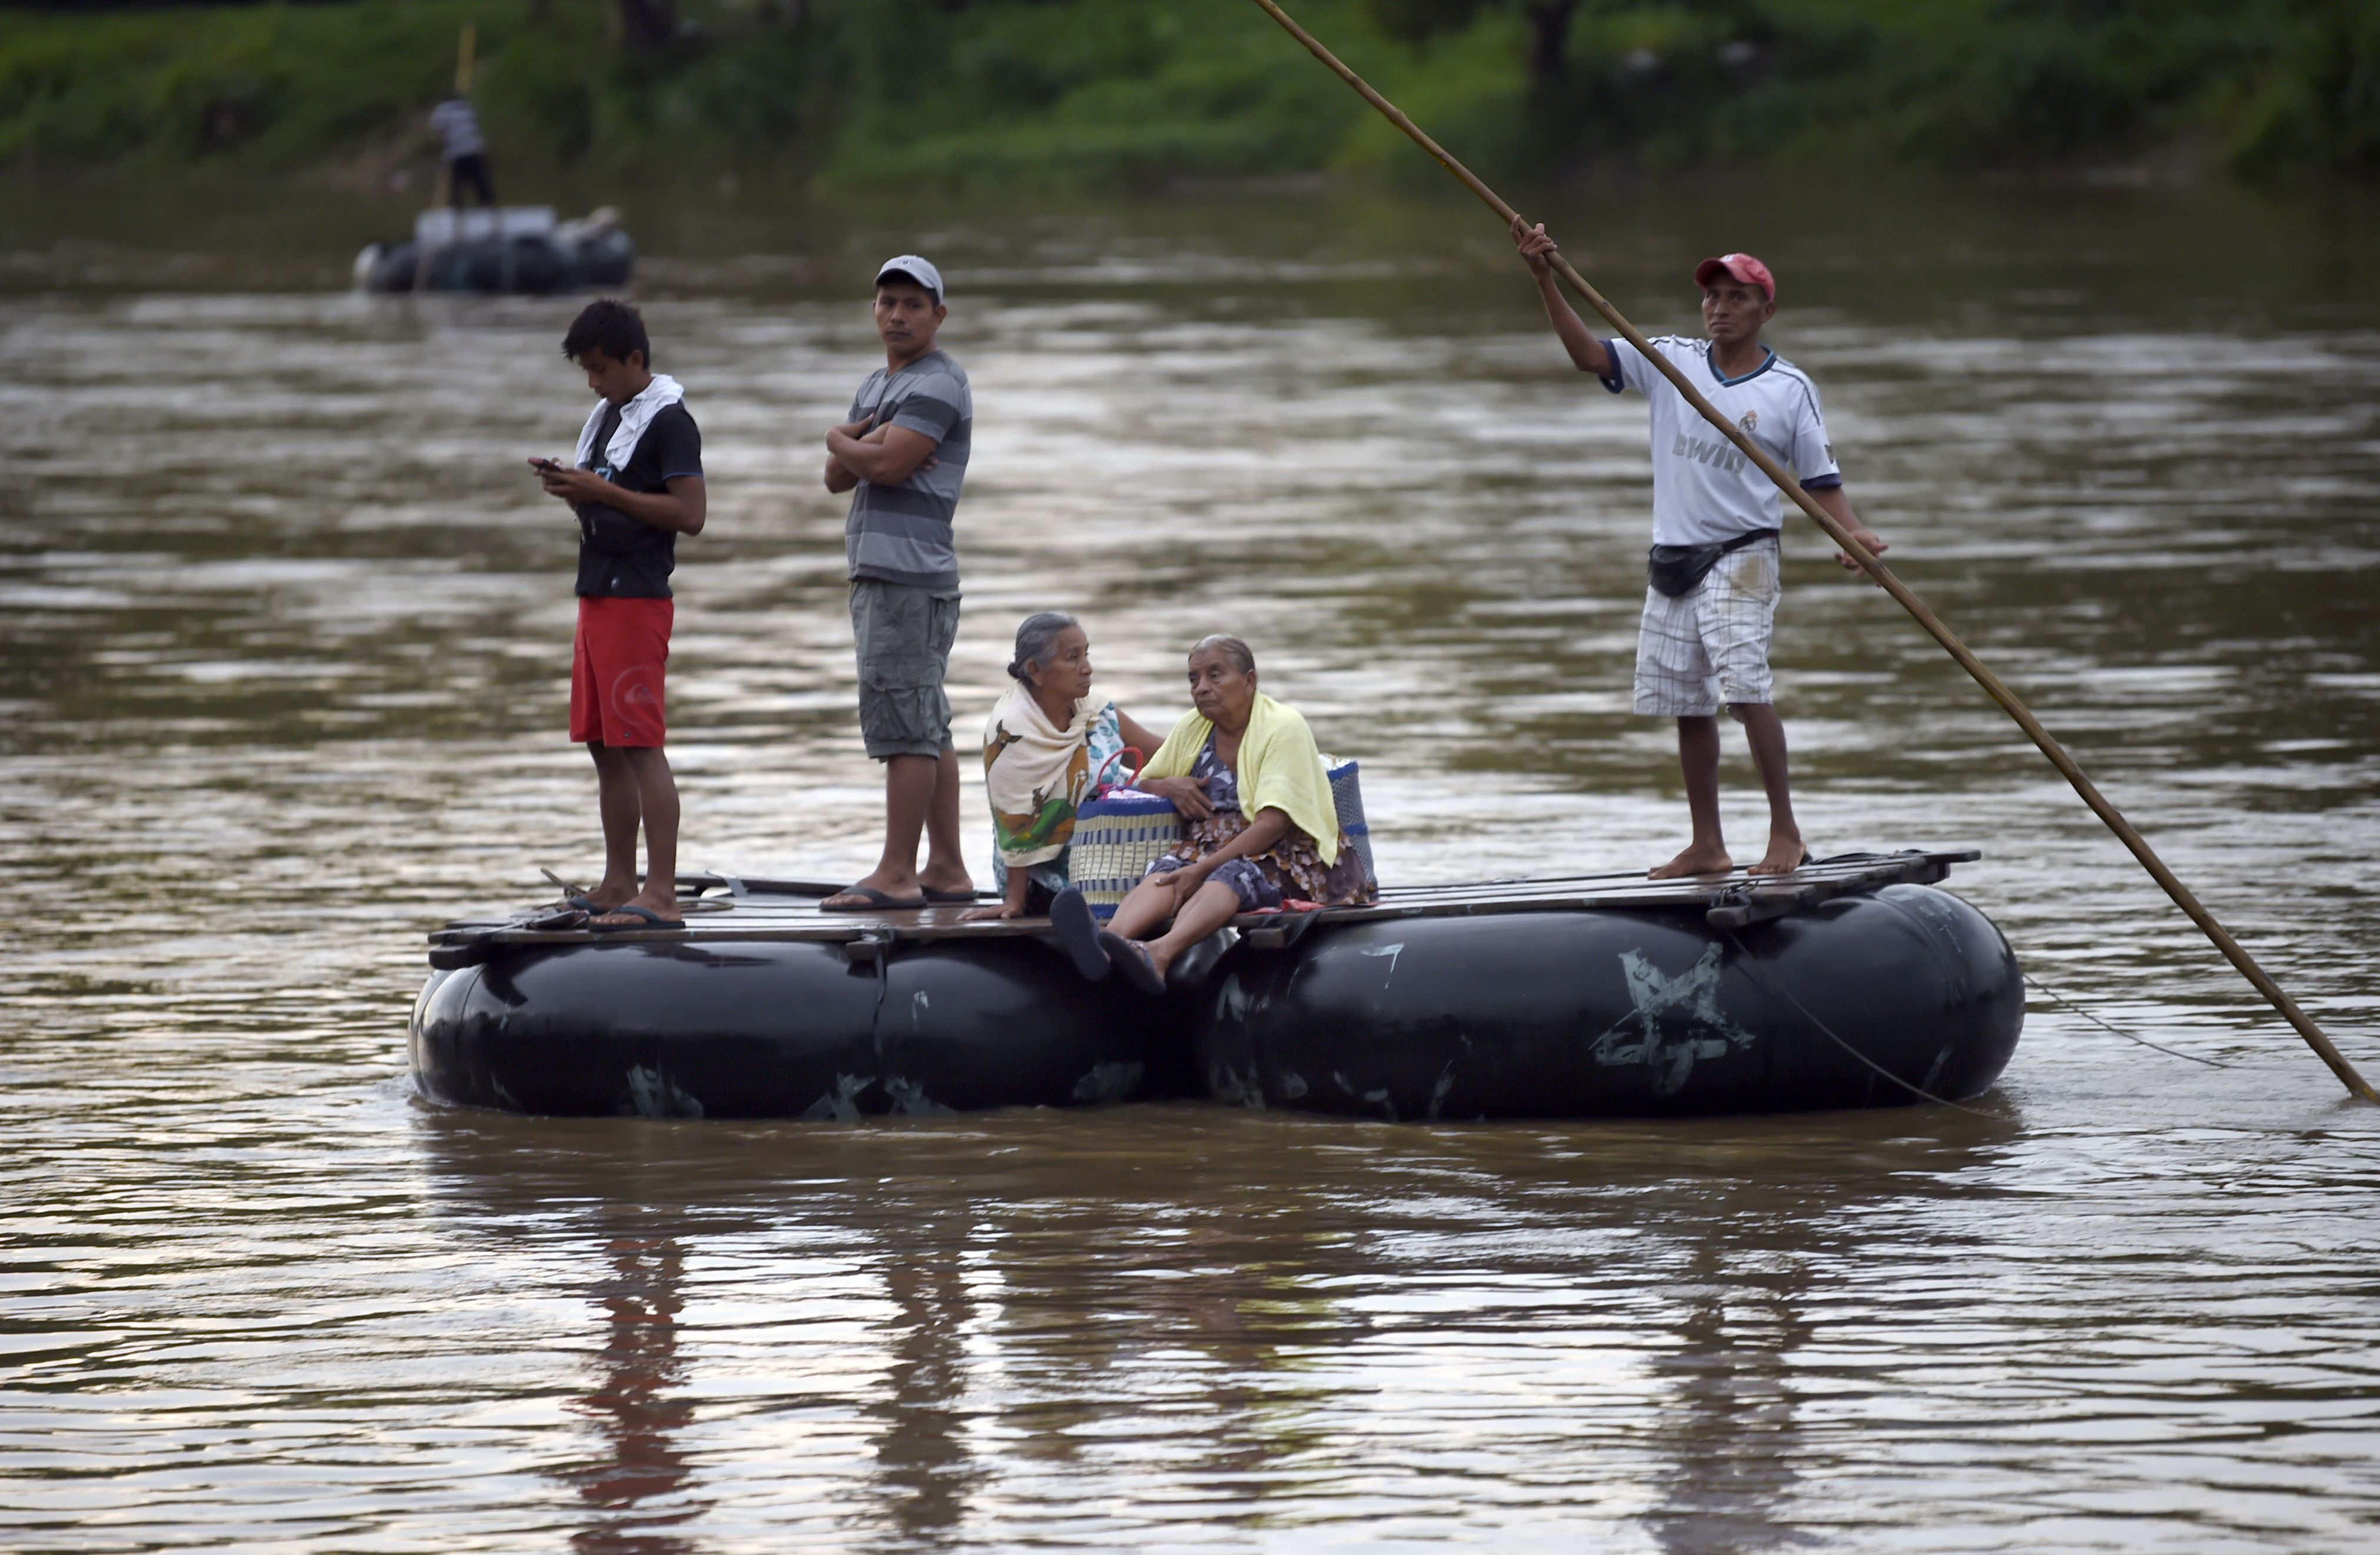 Guatemalan migrants use a makeshift raft to illegally cross the Suchiate river from Guatemala to Mexico, on July 22, 2019. (Alfredo Estrella/AFP/Getty Images)